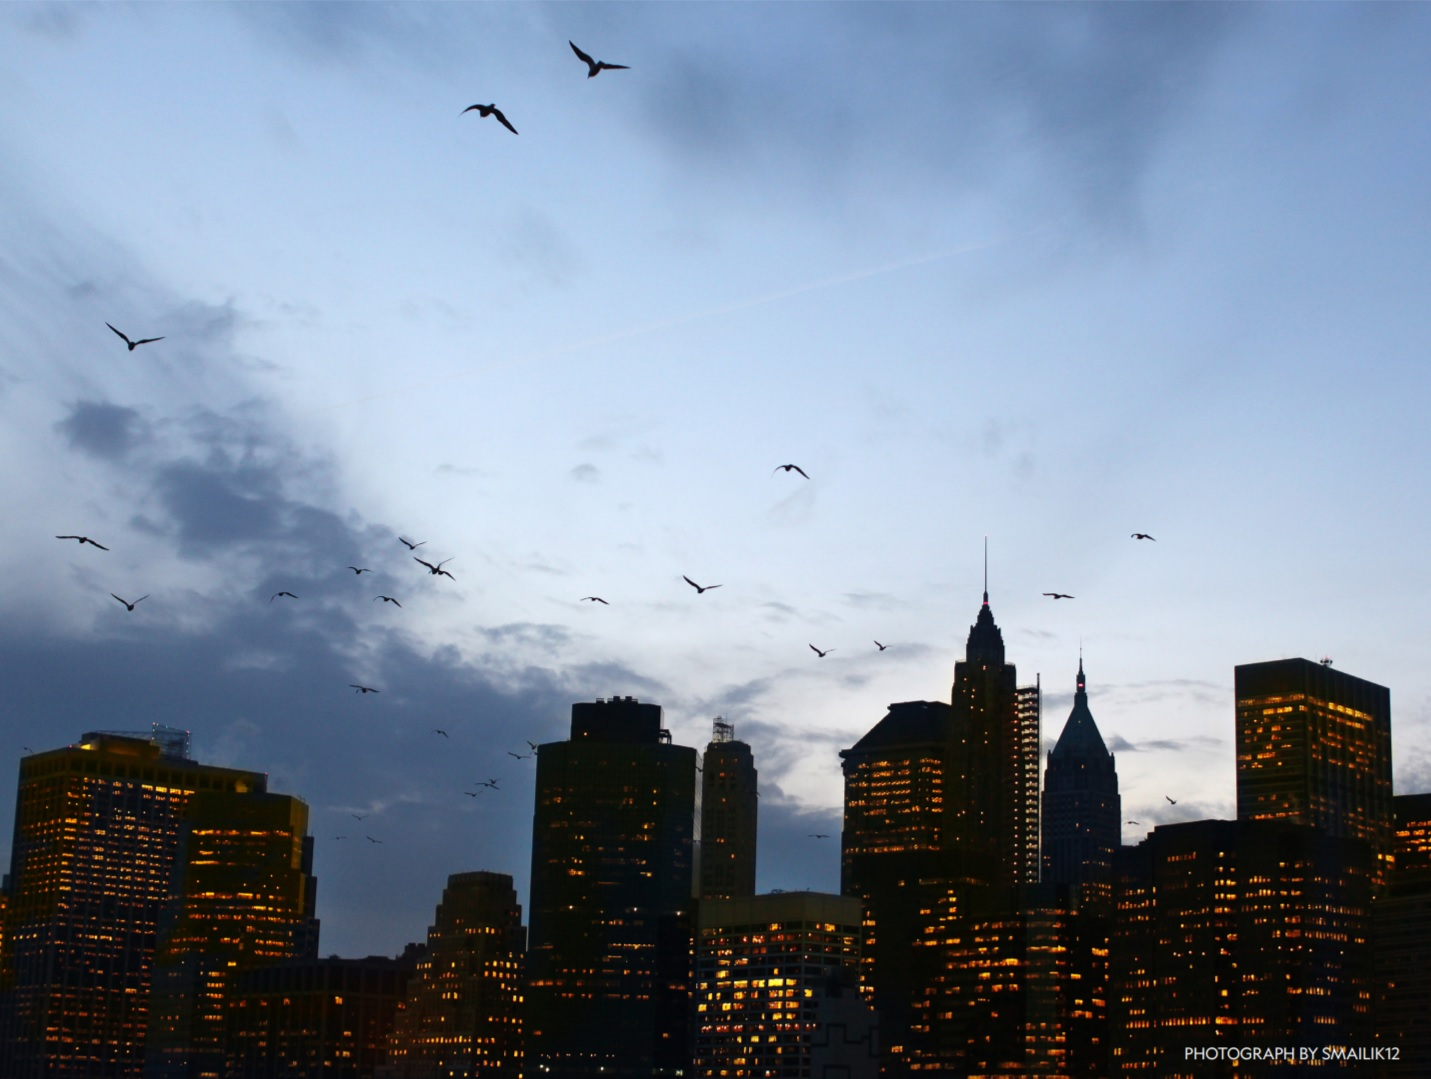 Bird migration and cities